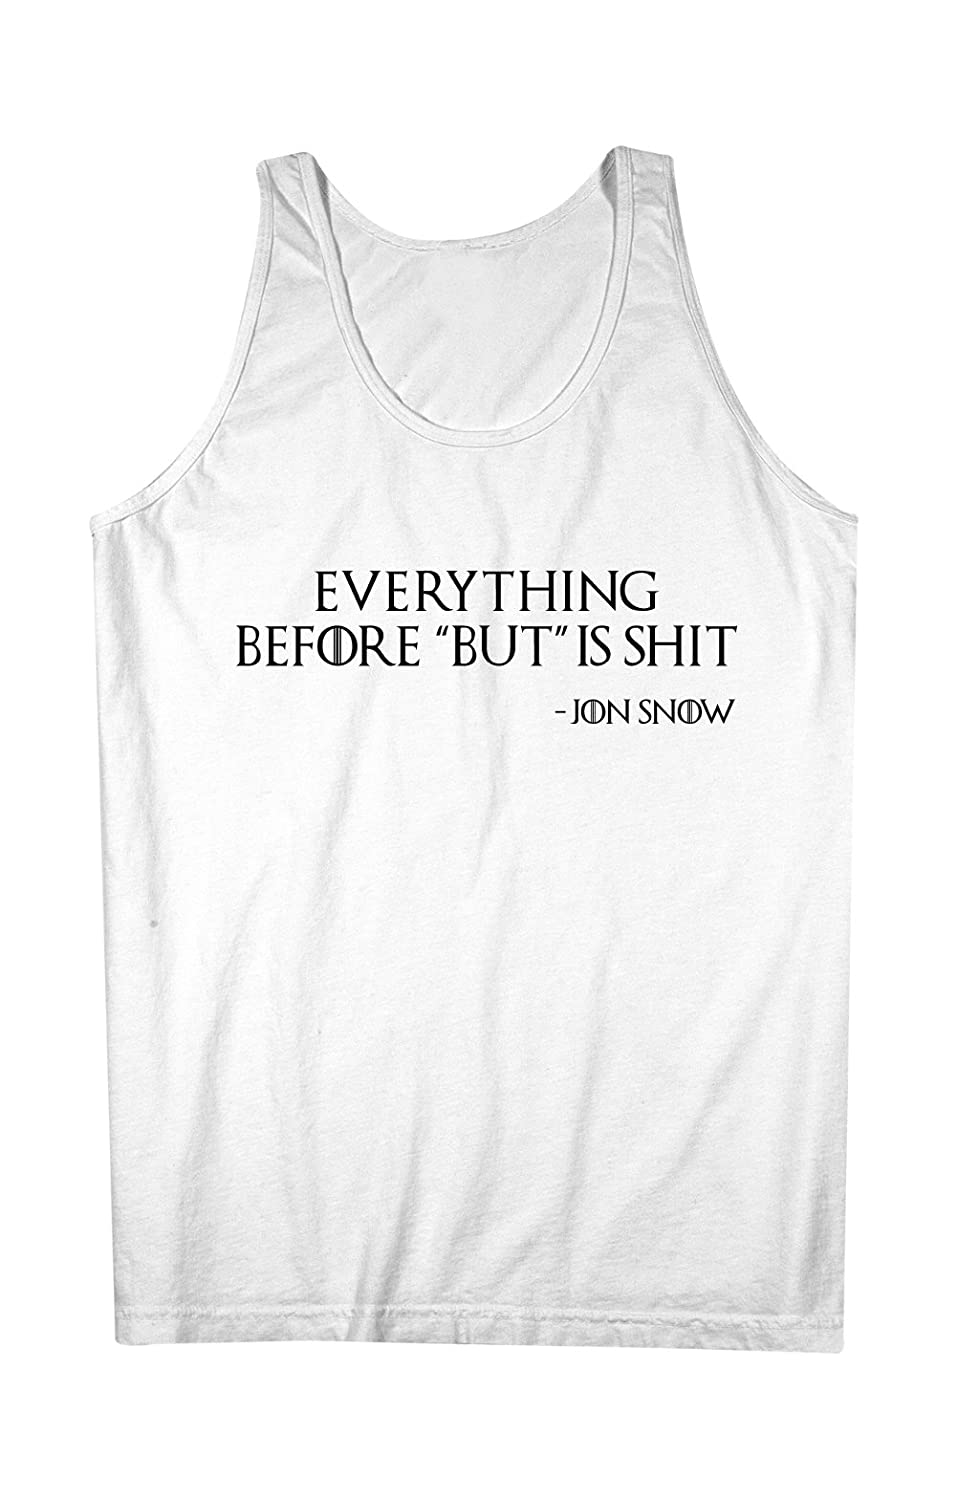 Everything Before But Is Sh*t Jon Snow 男性用 Tank Top Sleeveless Shirt